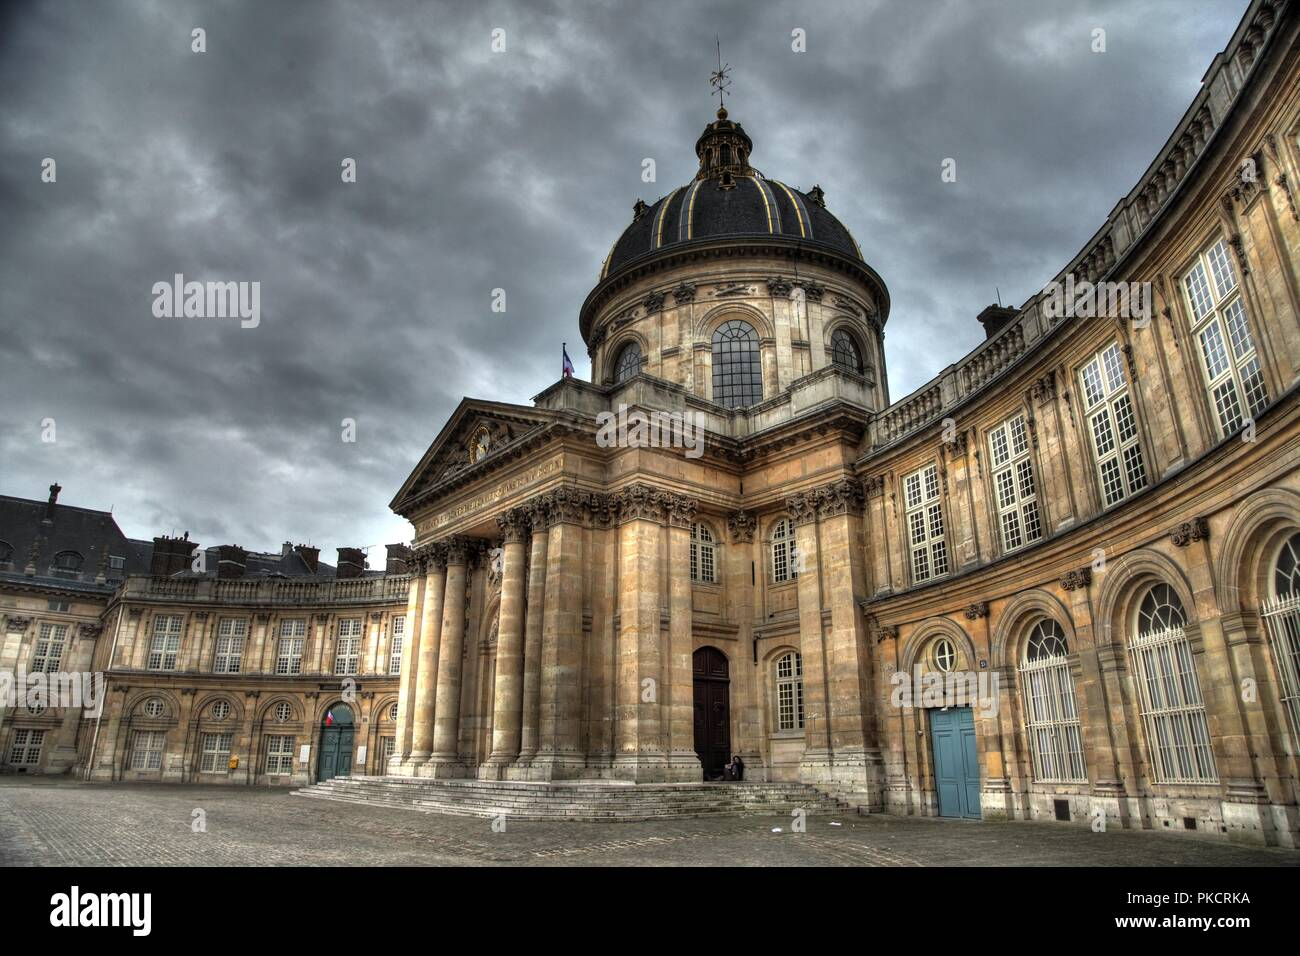 'Institut de France' in Paris (French Academy of Sciences). HDR overcast photo. - Stock Image